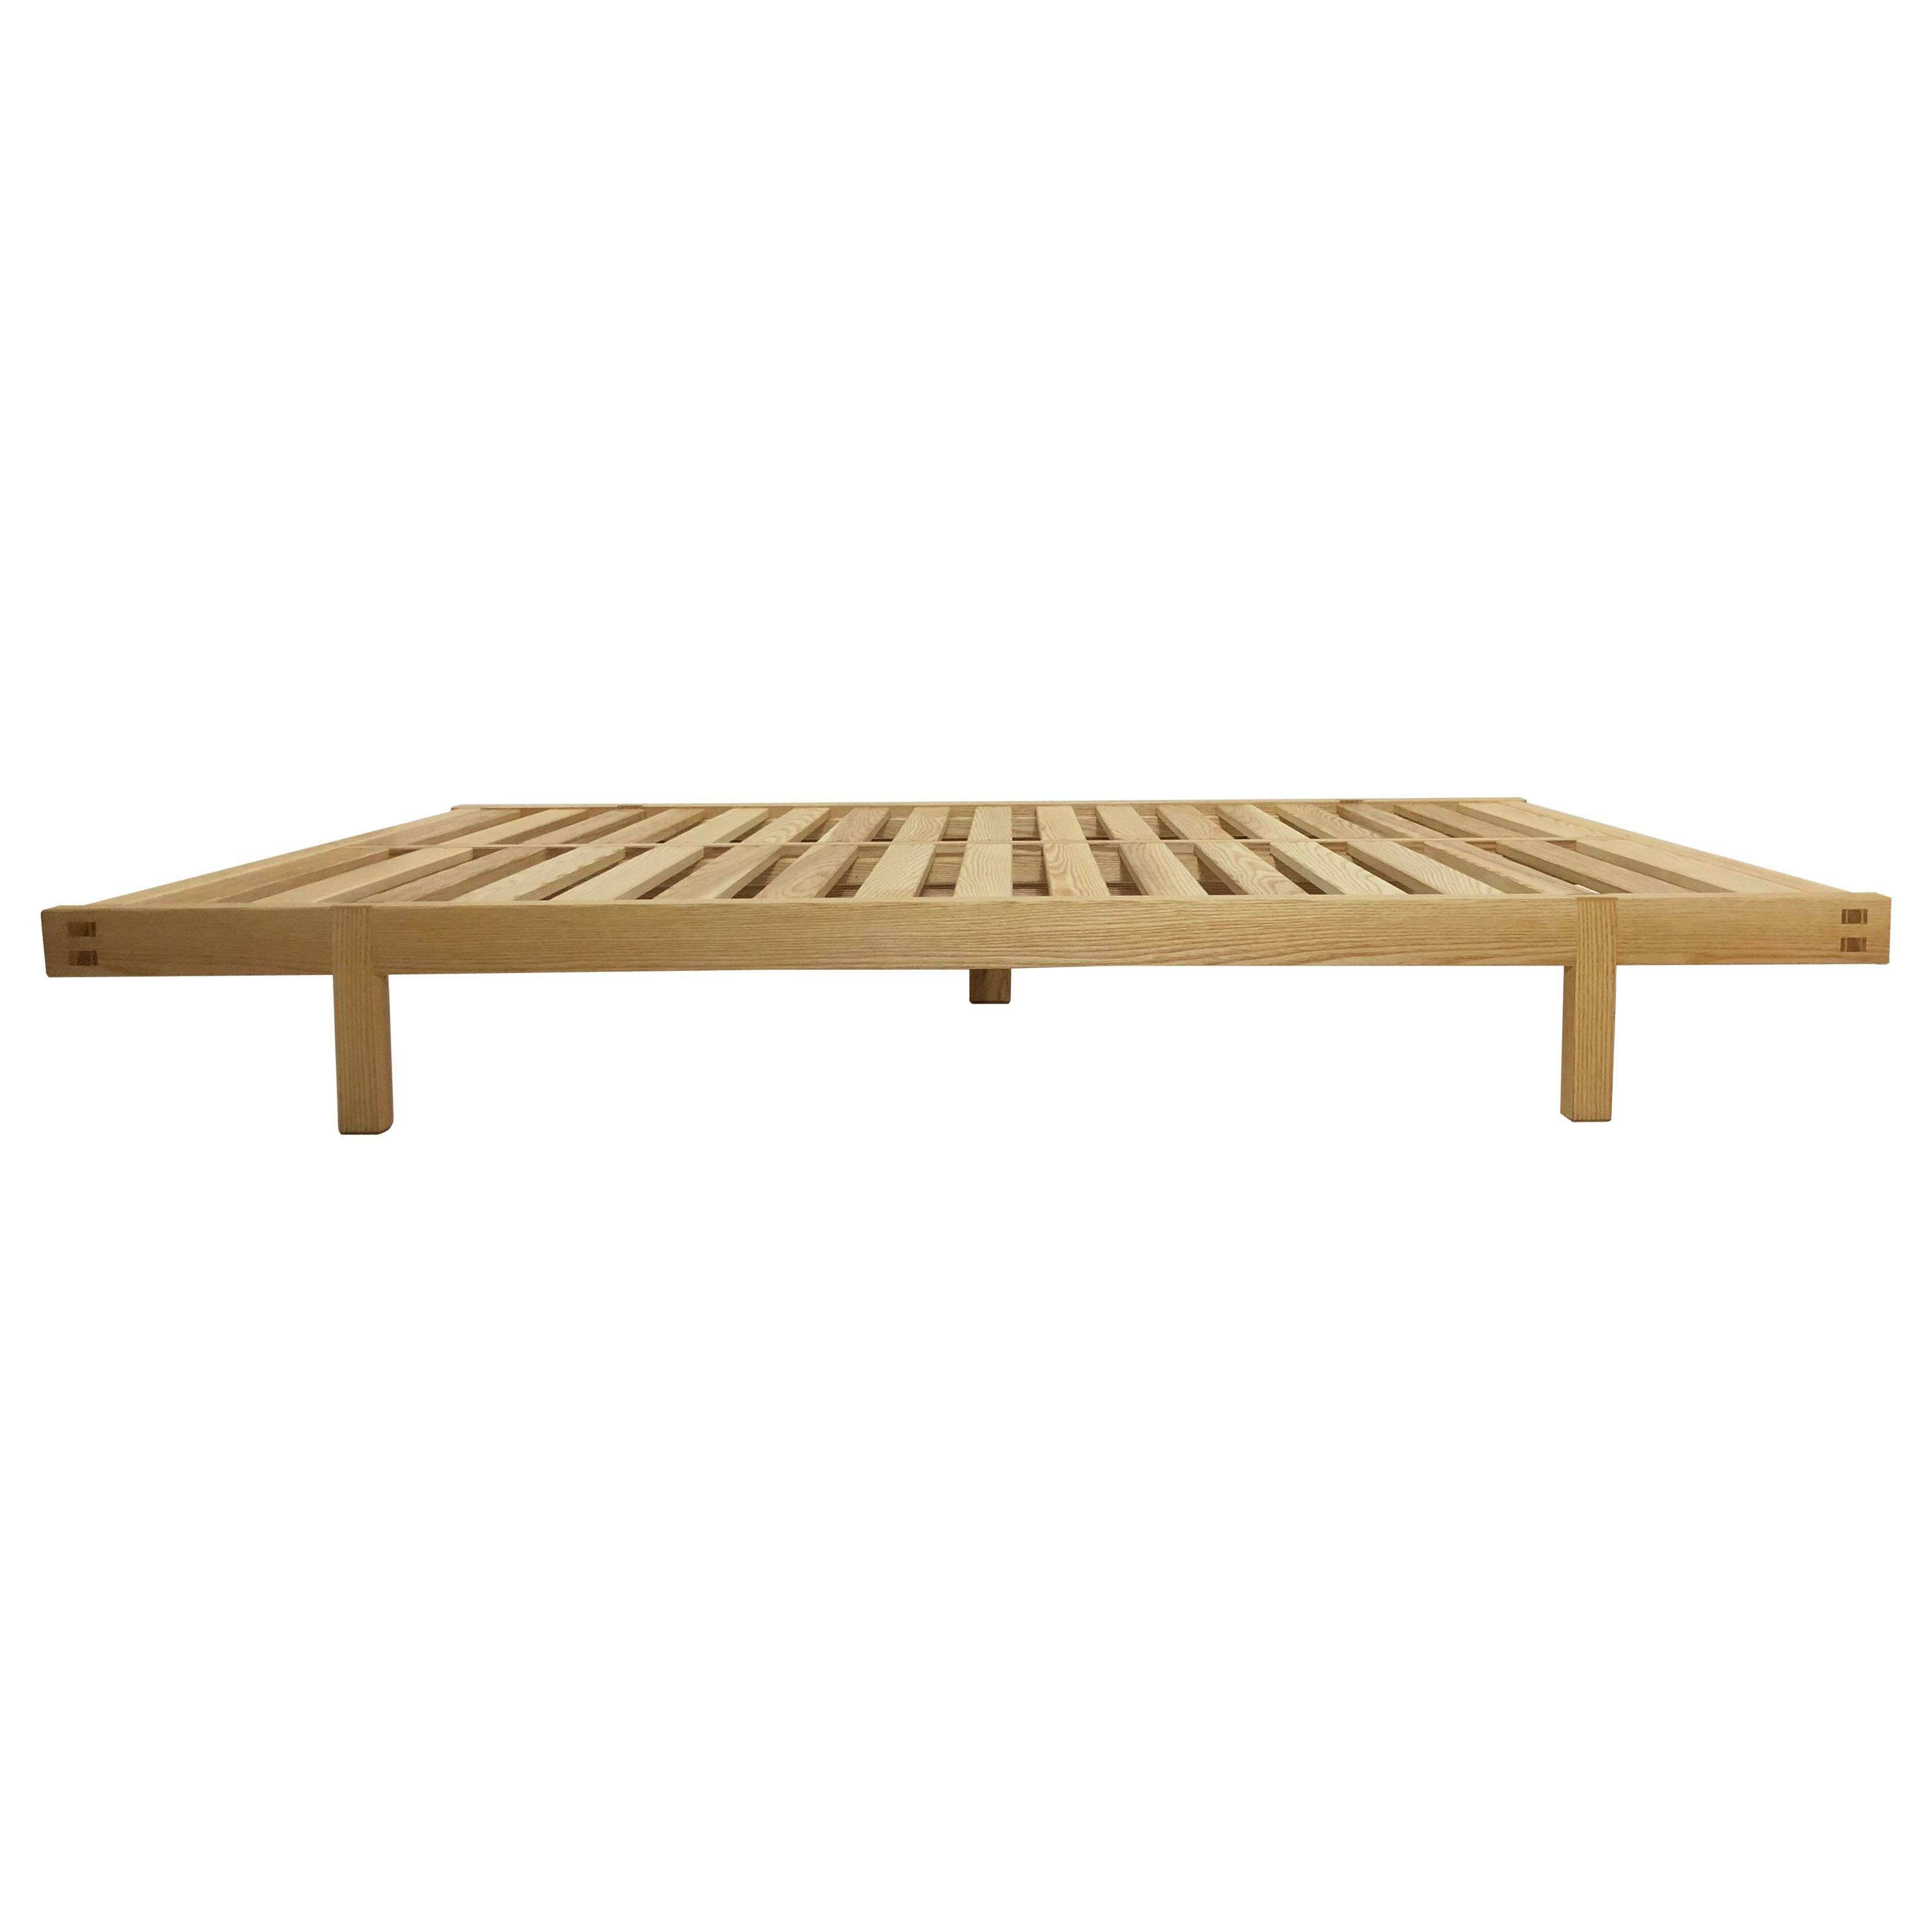 Dovetailed Platform Bed in Ash, Queen Size